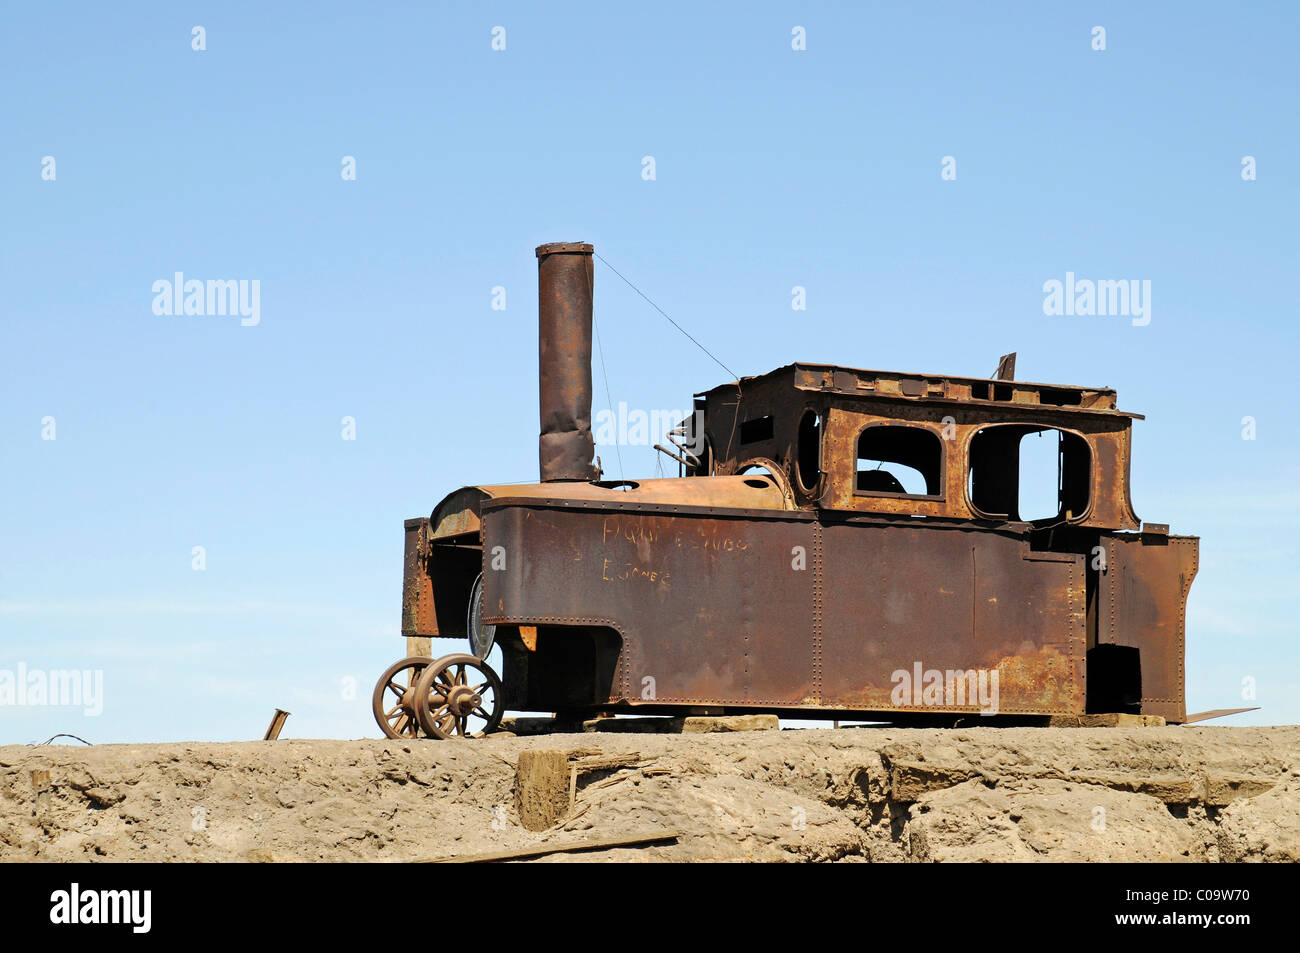 Locomotive, train, saltpeter works, abandoned salpeter town, ghost town, desert, museum, Unesco World Heritage Site, - Stock Image